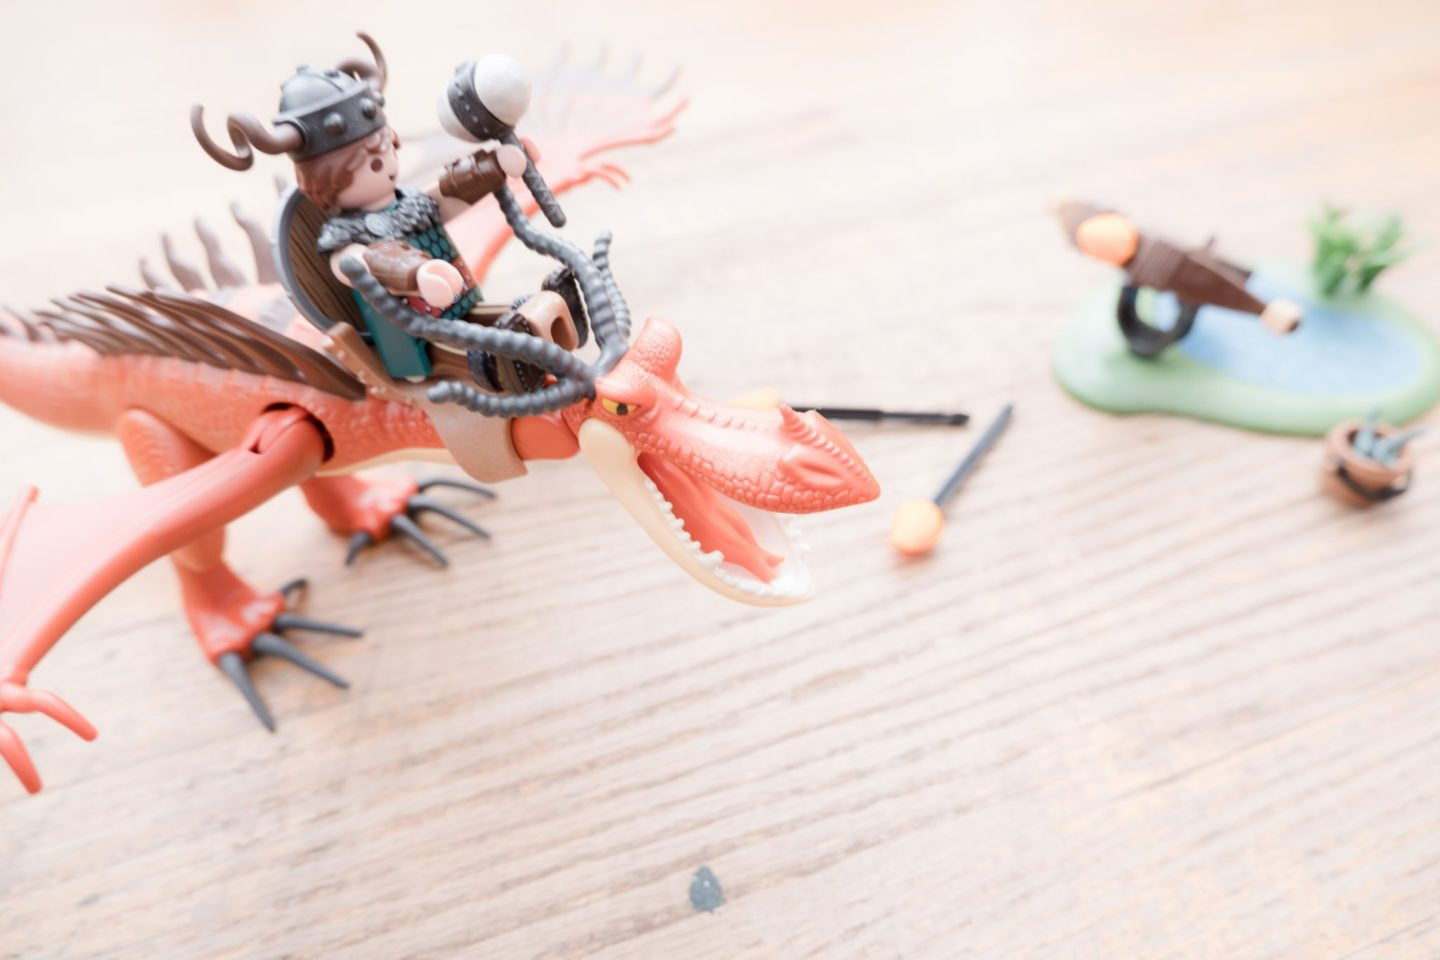 PLAYMOBIL Dragon Racers Playsets